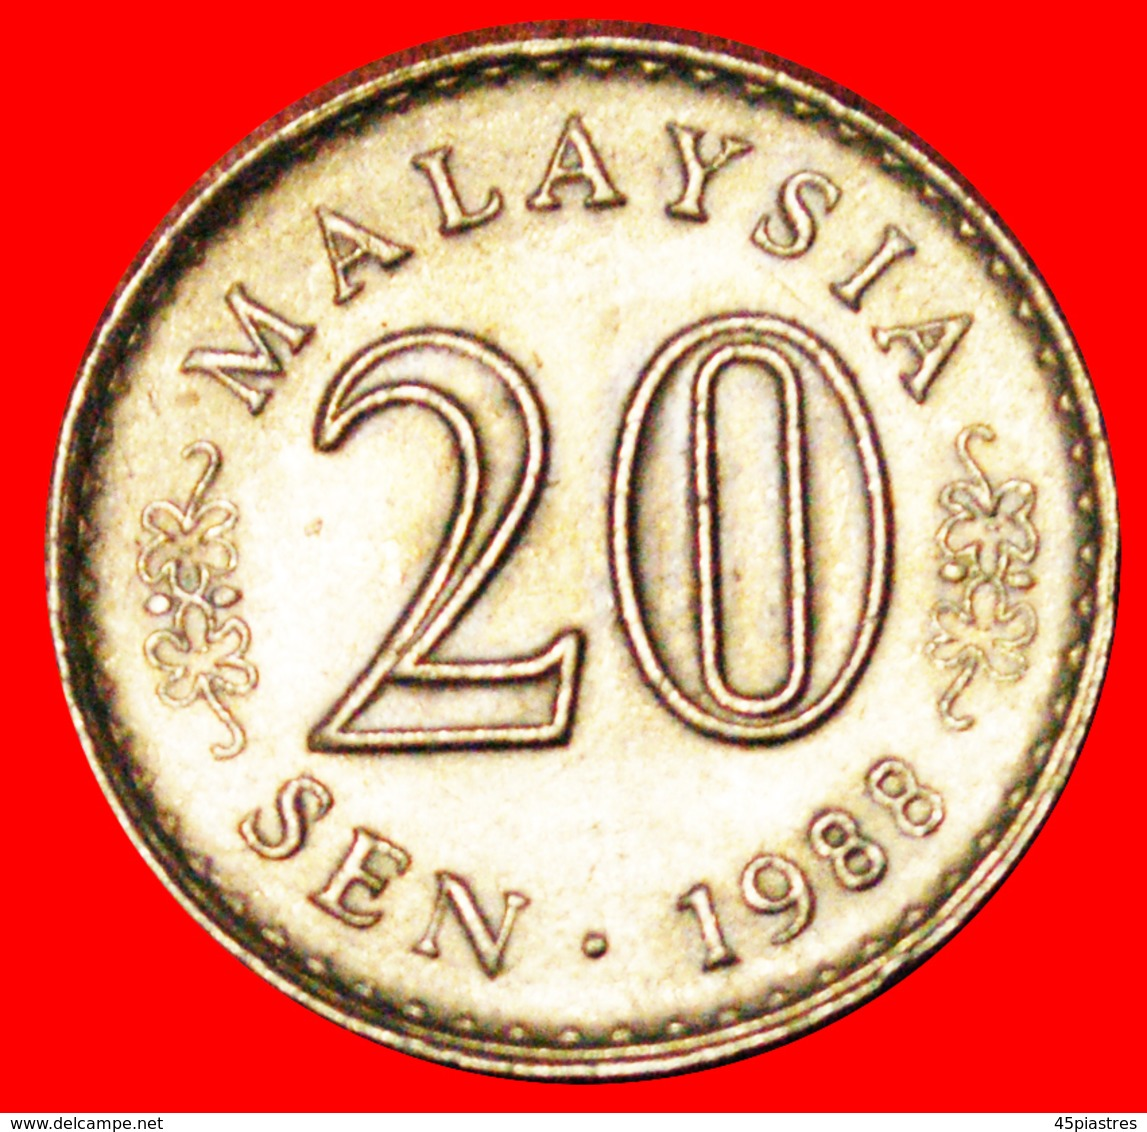 √ MOON AND STAR ERROR: MALAYSIA ★ 20 SEN 1988! LOW START ★ NO RESERVE! - Malaysie